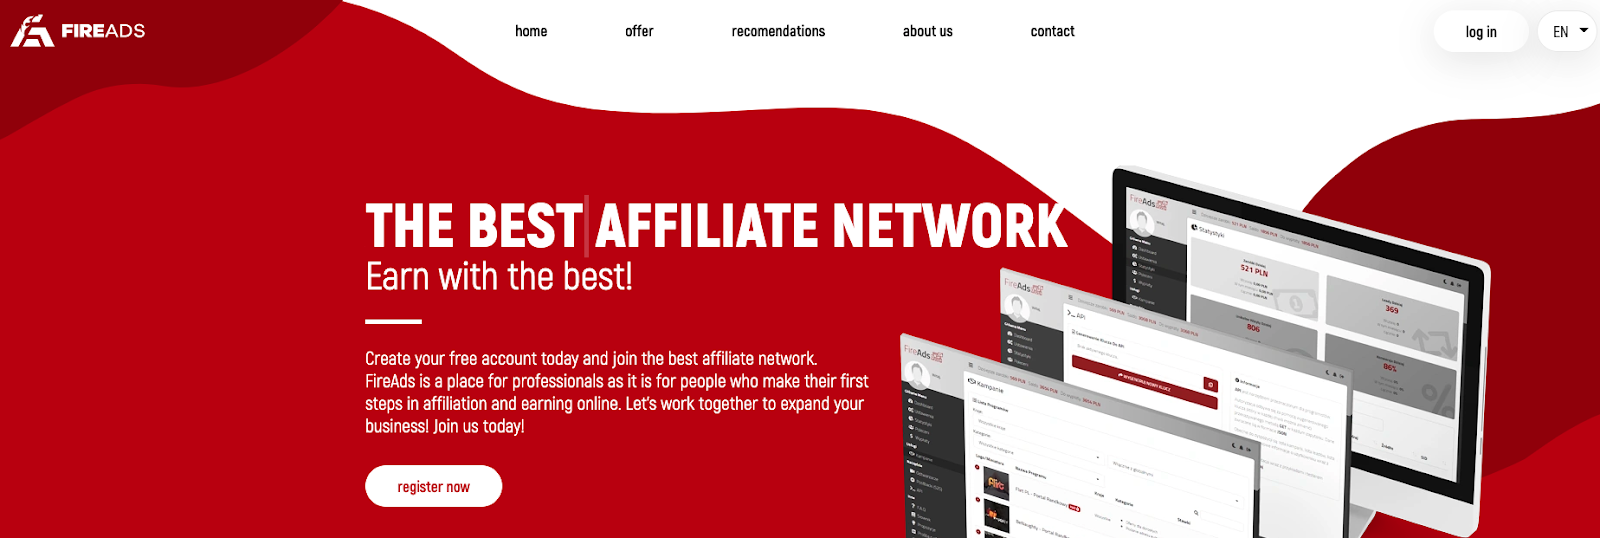 fireads landing page with text about affiliate network and images of computer screens